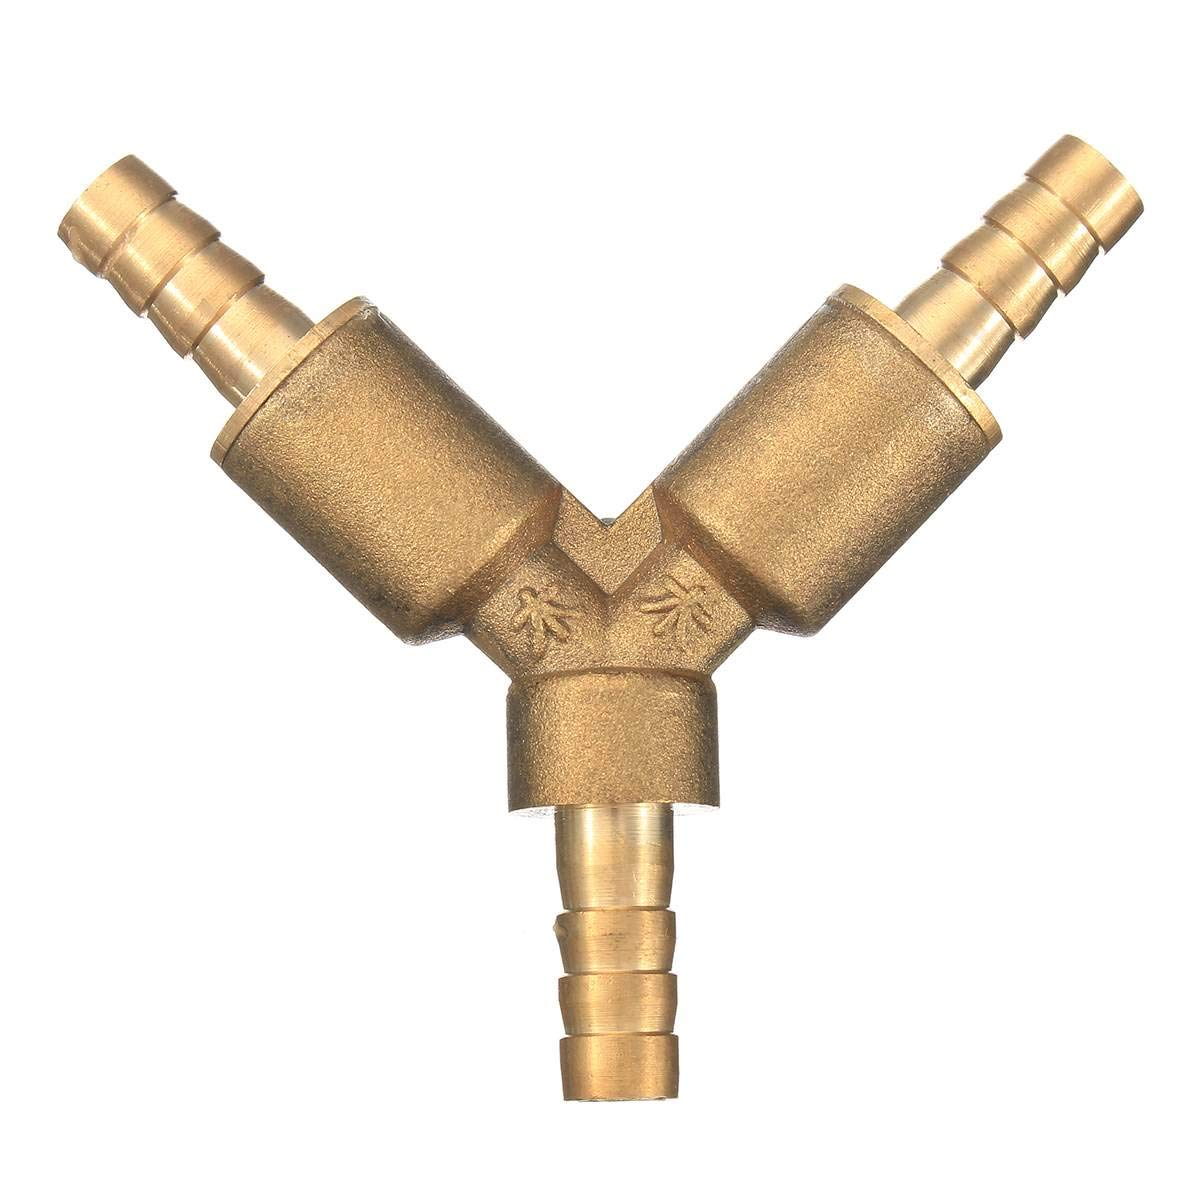 Xucus 5//16 8mm Brass Y 3-Way Shut Off Ball Valve Fitting Hose Barb Fuel Gas CLAMP Tee New Arrival